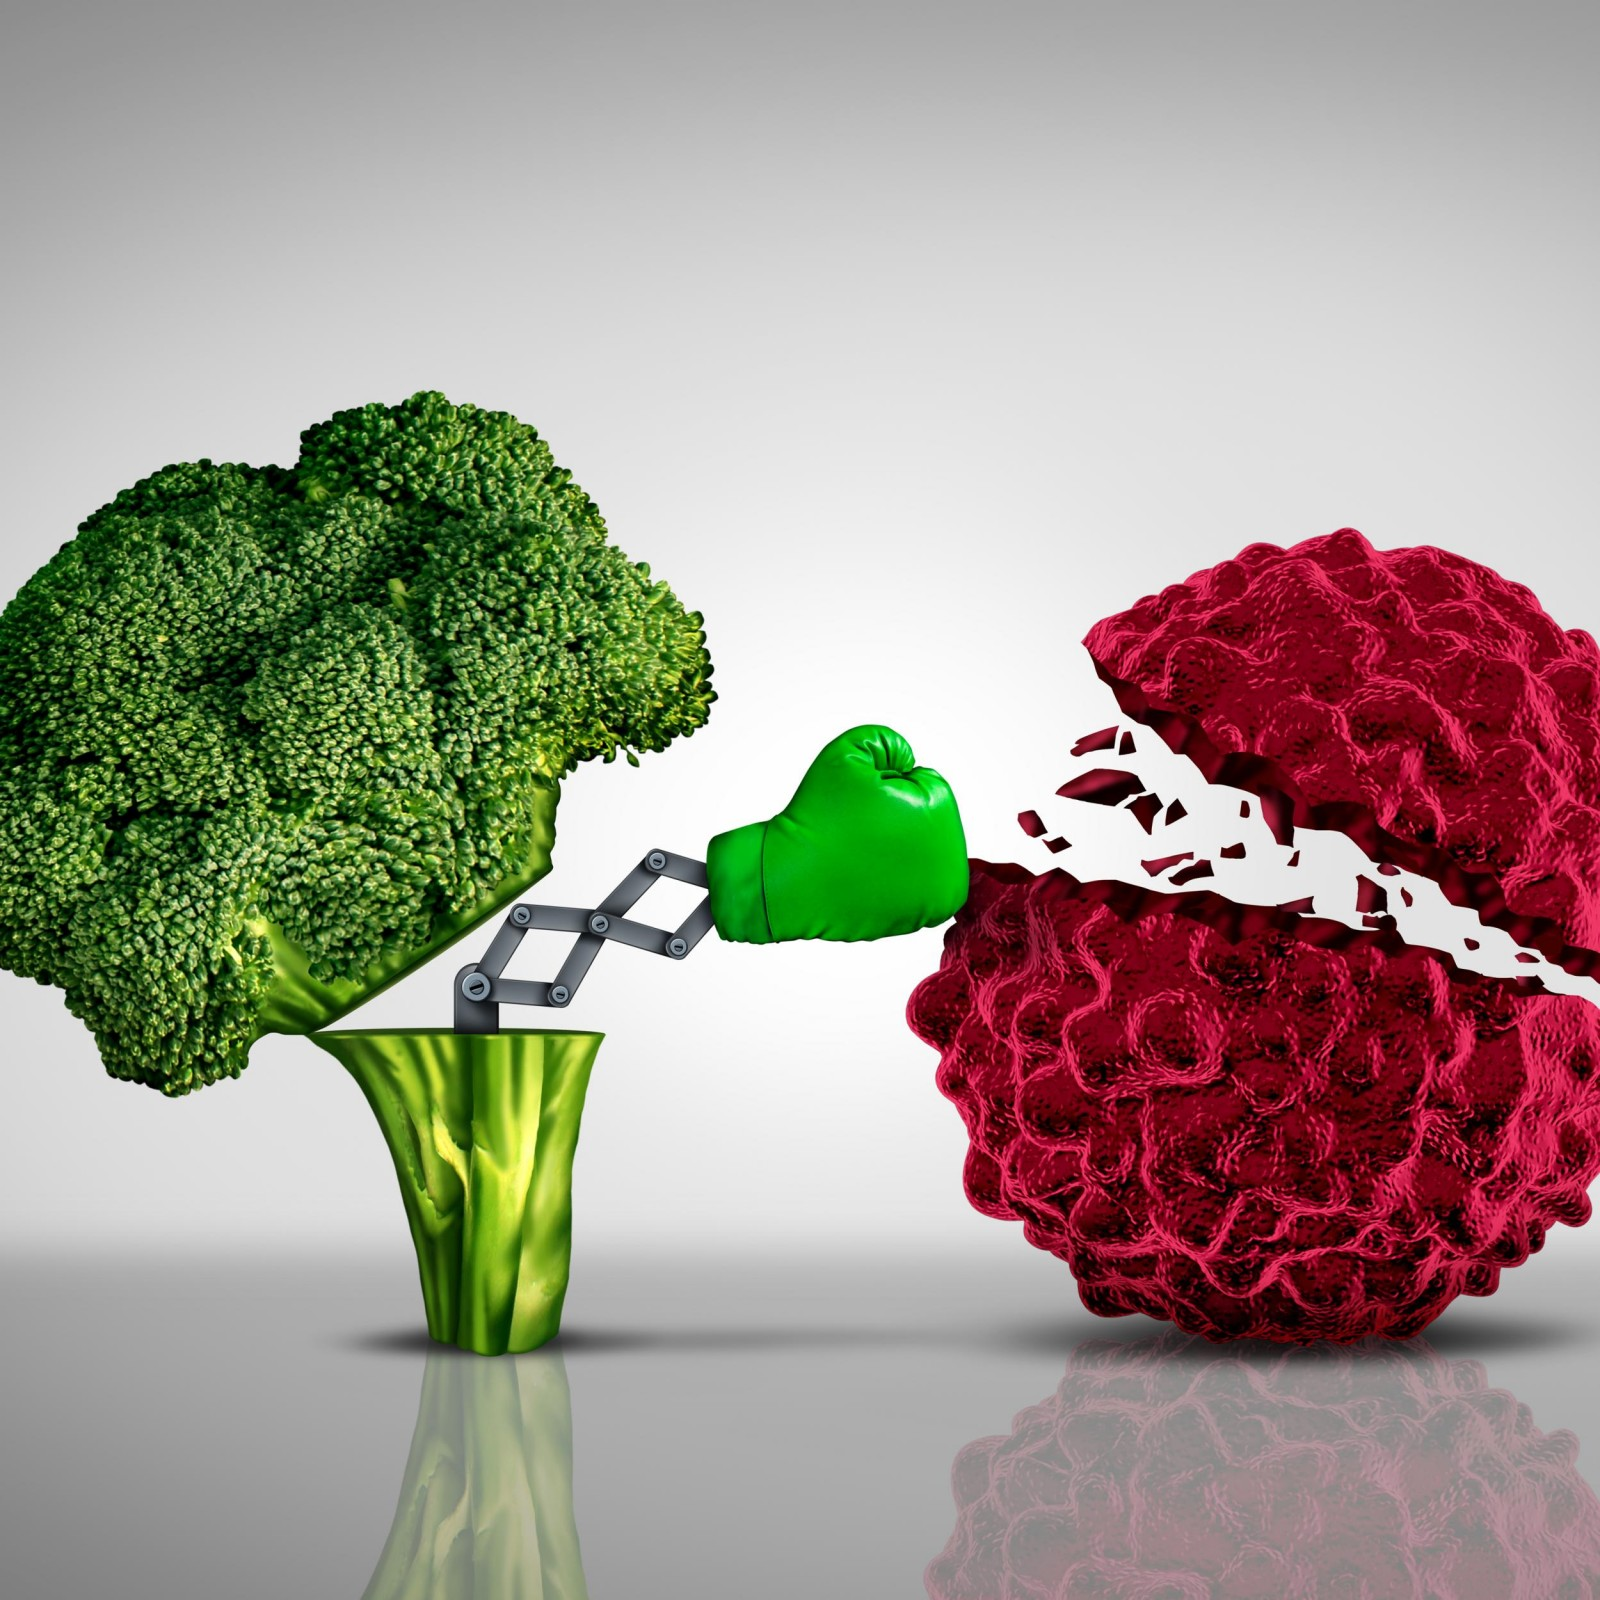 Cancer Fighting Raw Food Recipes